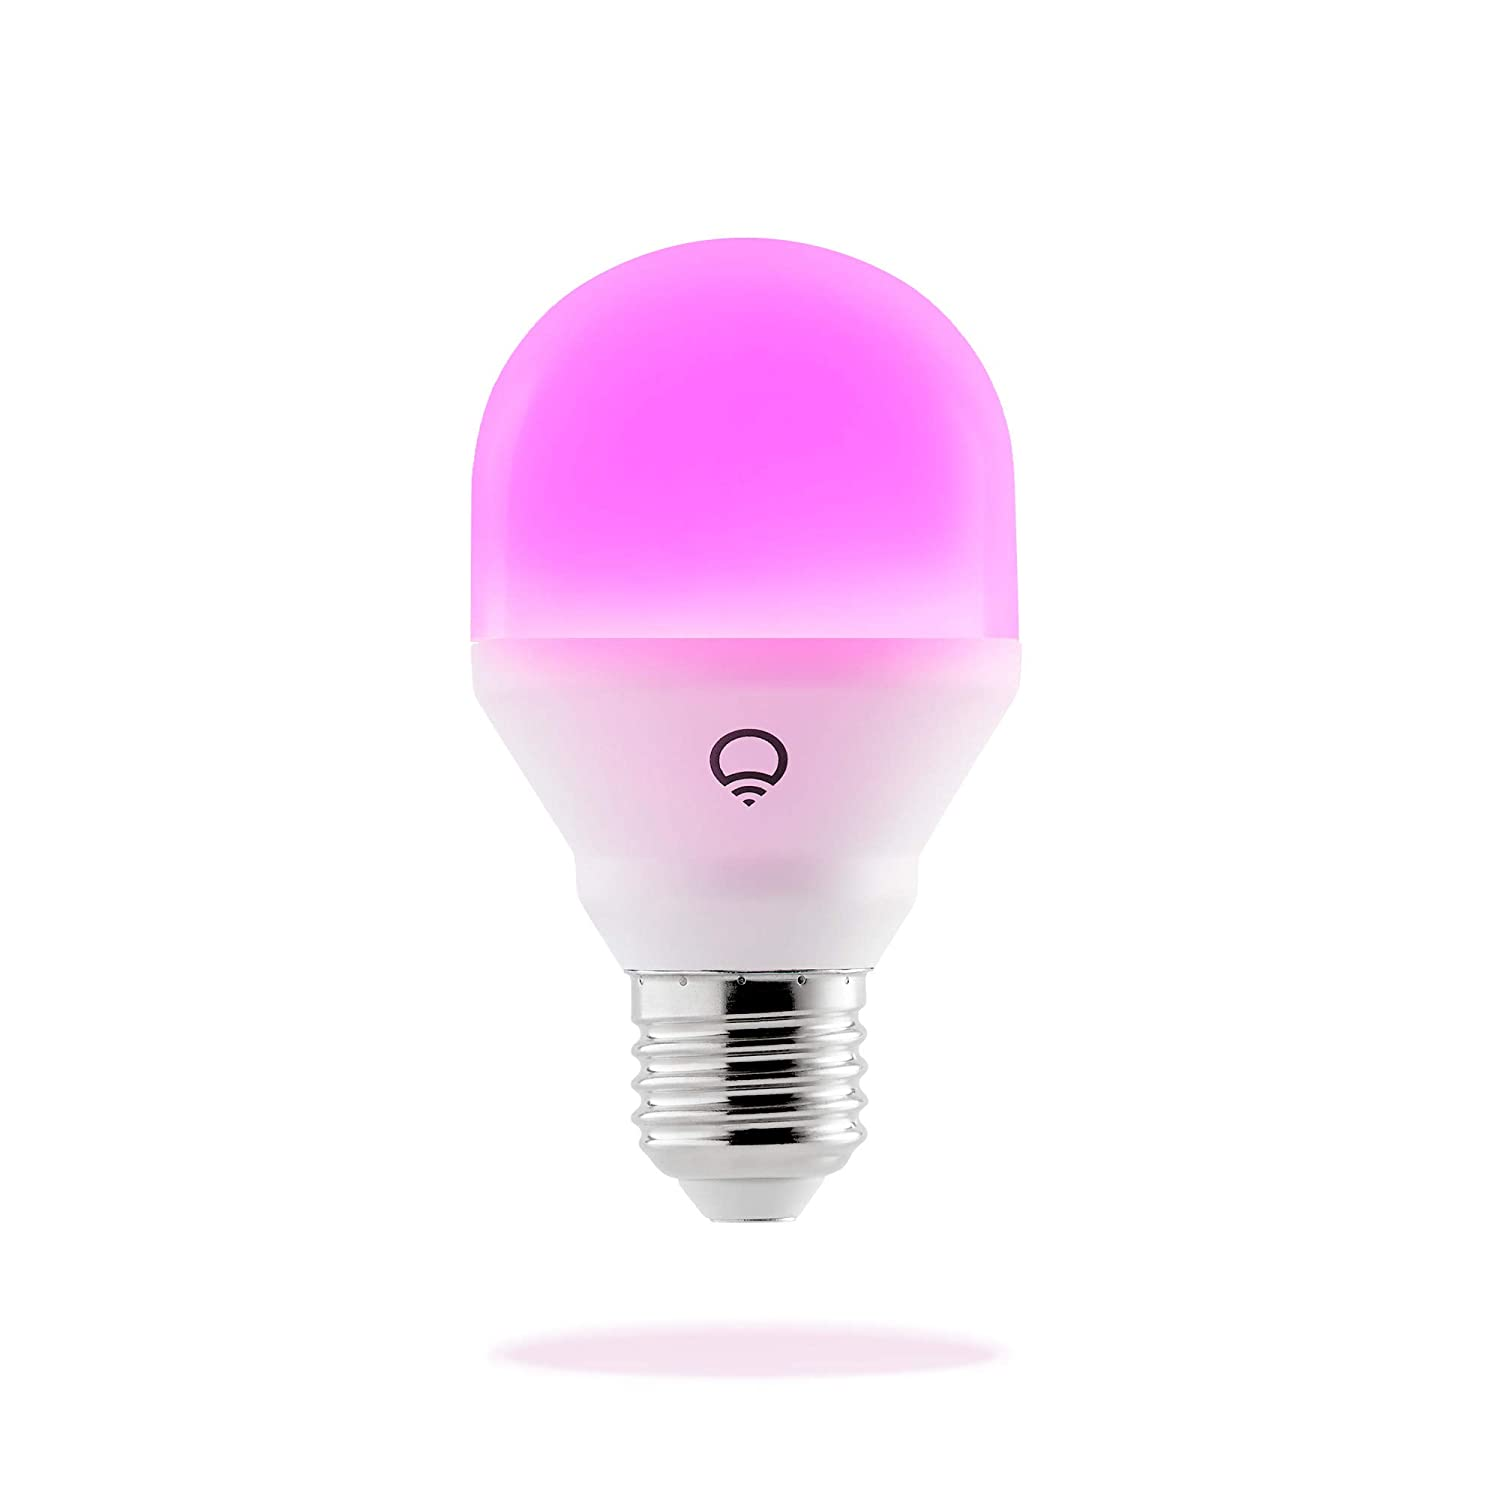 LIFX L3A19MC08E26 Mini Wi-Fi Smart LED Light Bulb